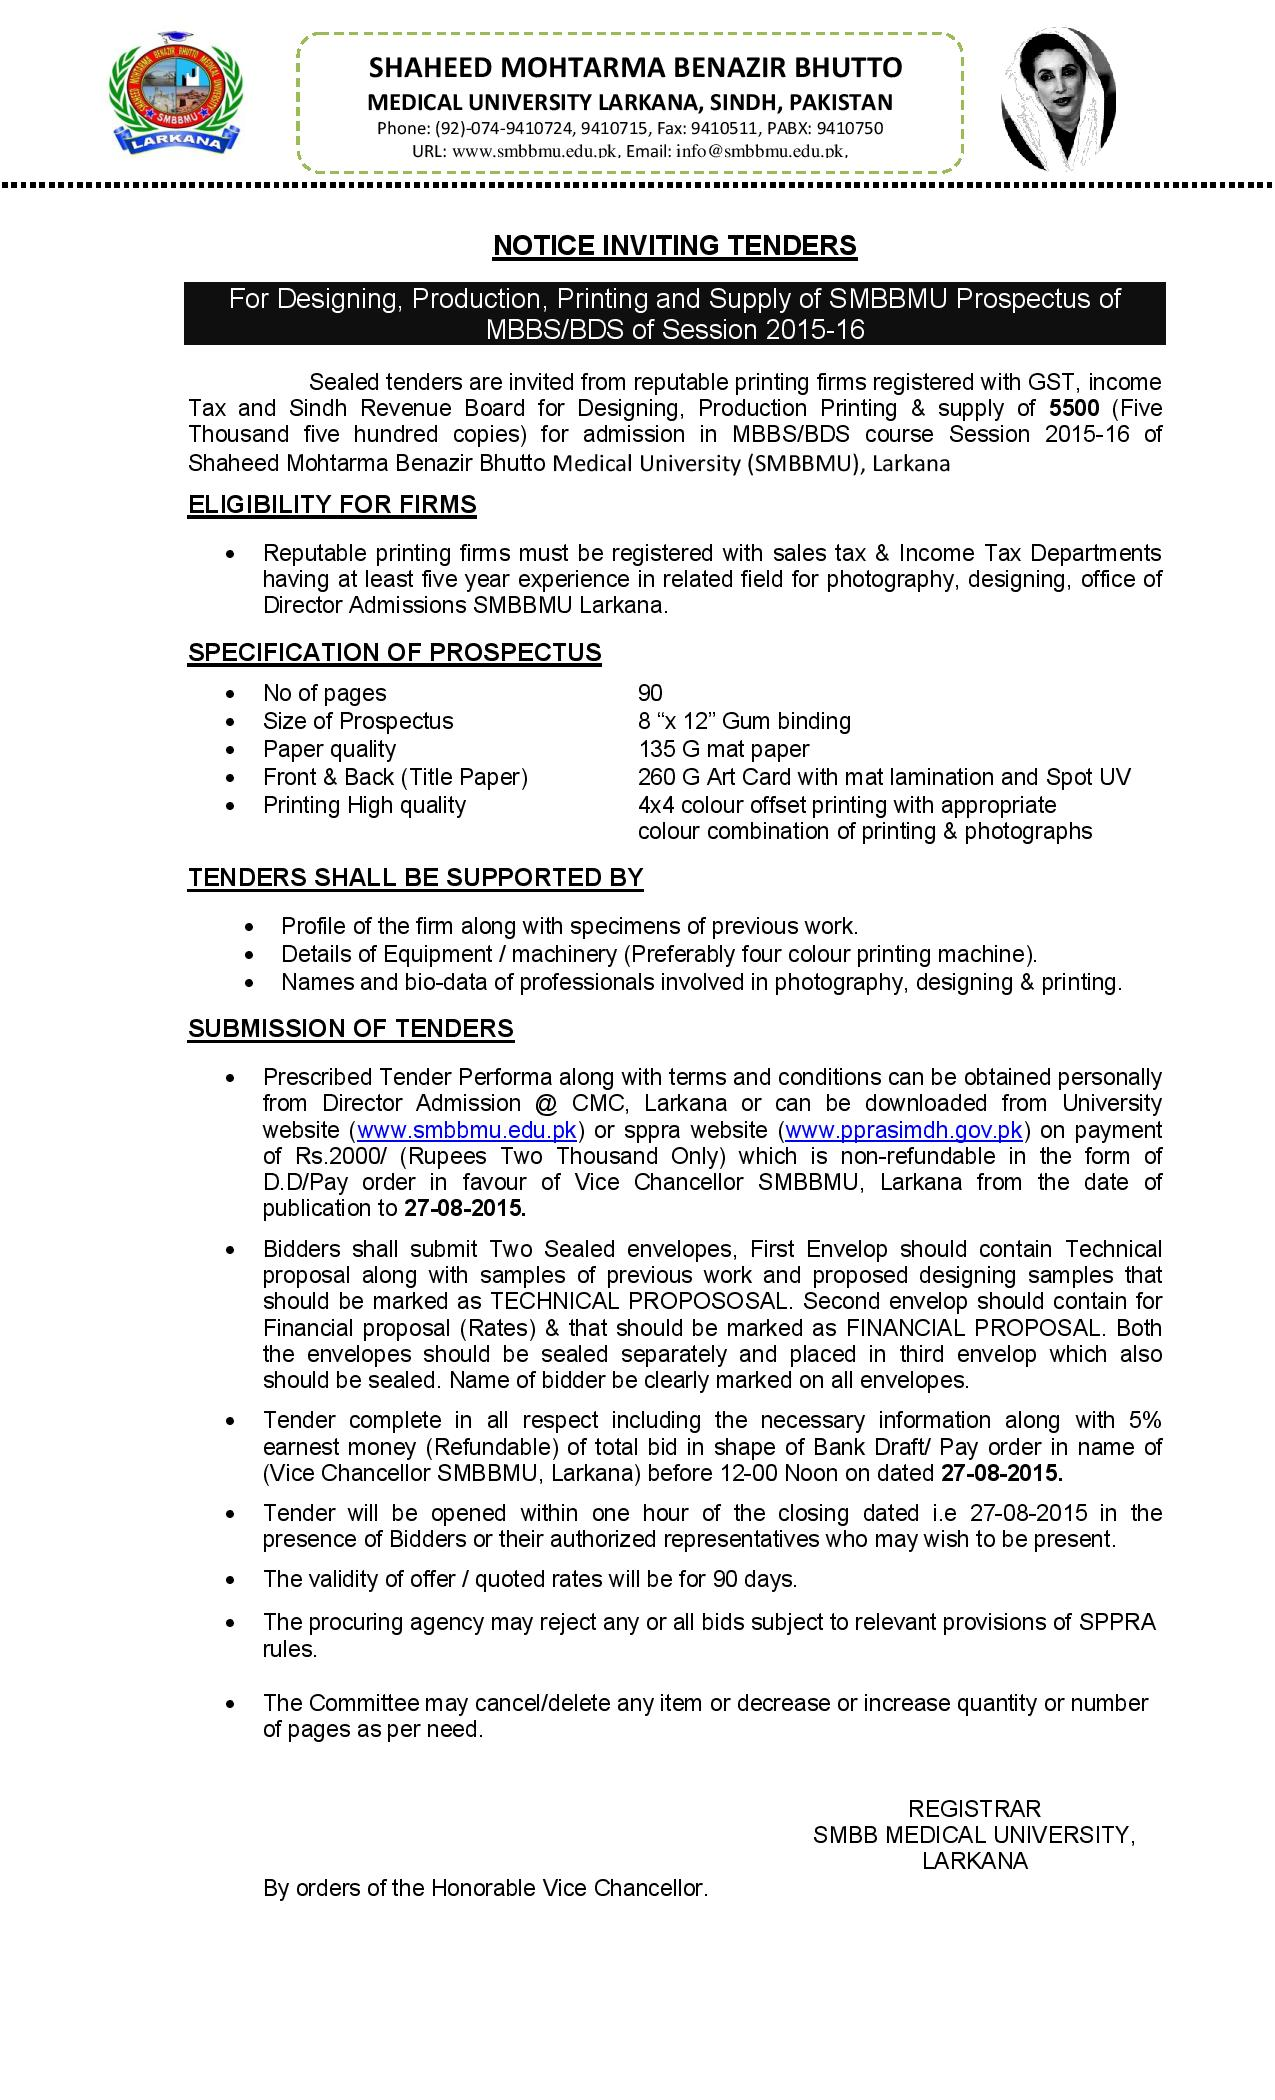 Modest Proposal Essay Admission Papers For Sale Presidency College Kolkata Cheap Graduate  Admission Essay Sample Images About Med School Buy Essay Papers Online also Essay For Students Of High School Tales Of The Fourth Grade Nothing Book Report Essay On Mam  Proposal Example Essay